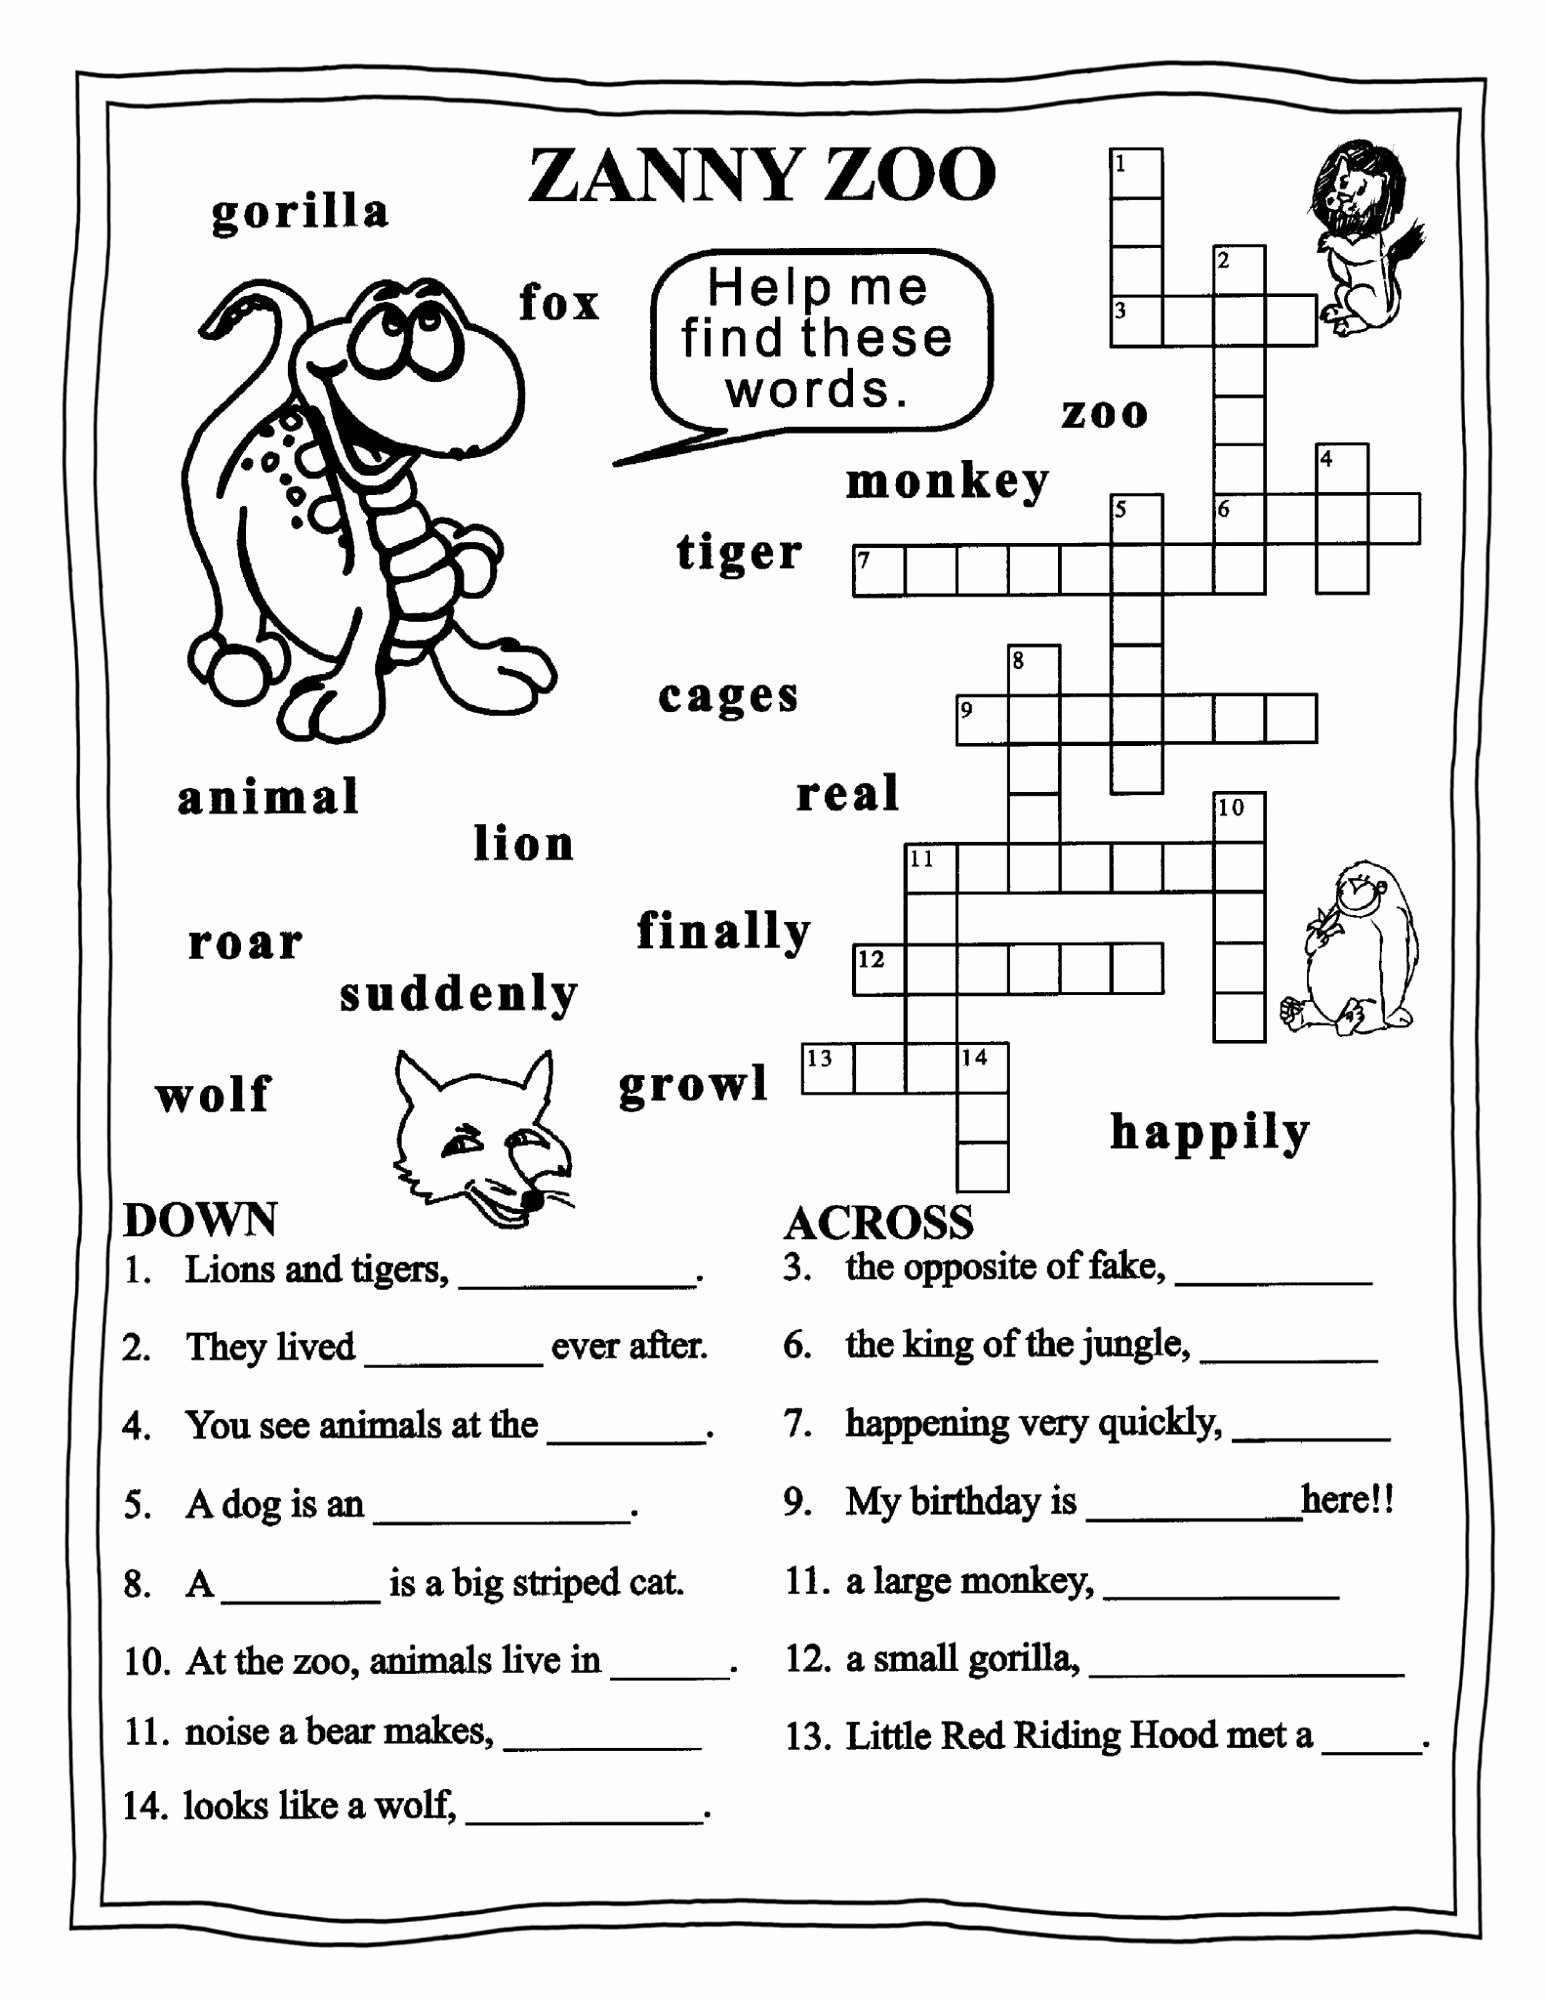 English Worksheet for Grade 2 Elegant Free Worksheets for Grade 3